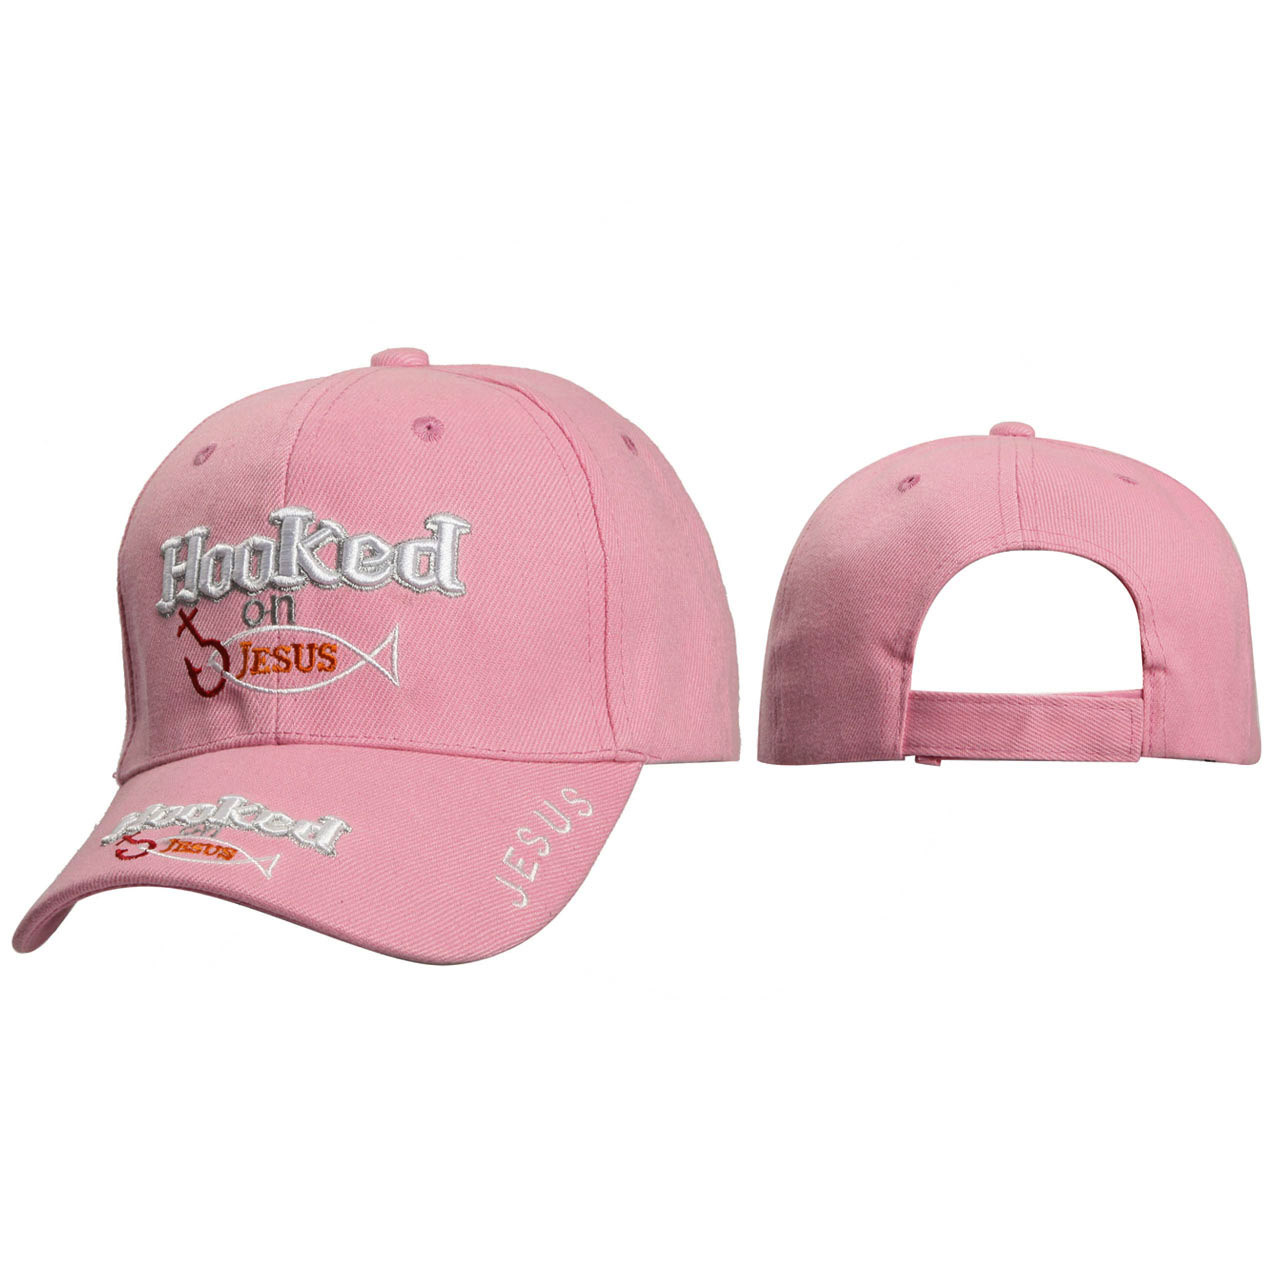 Wholesale Christian Caps ~ Hooked on Jesus ~ Pink